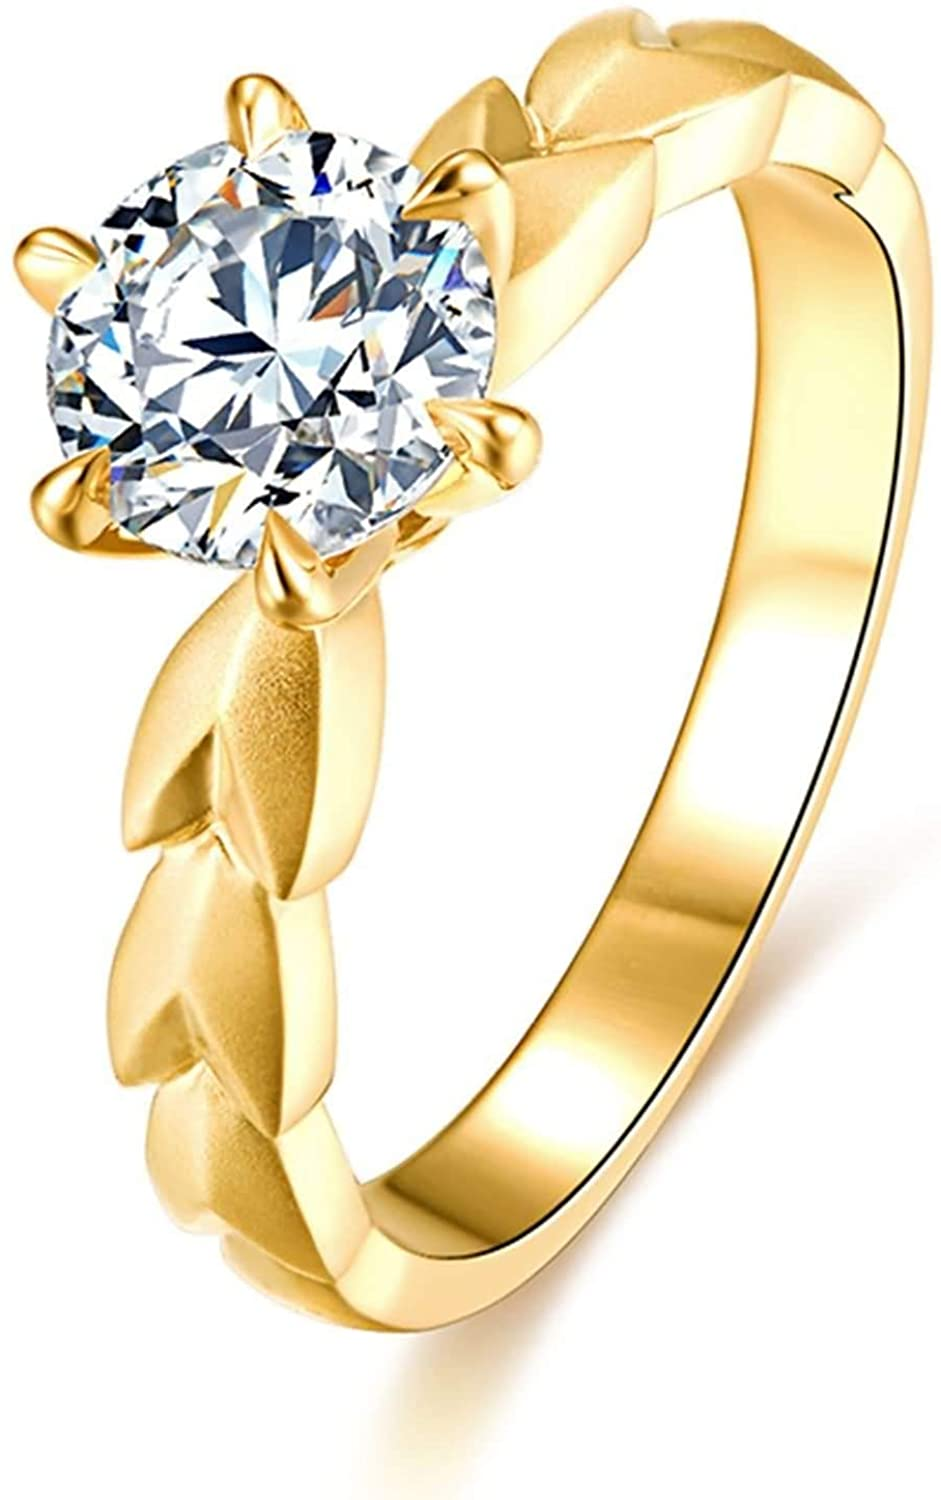 Aokarry Women's 18K Yellow Gold Engagement Ring Wheat Ear Six-Claw Inlaid Diamond Size 8